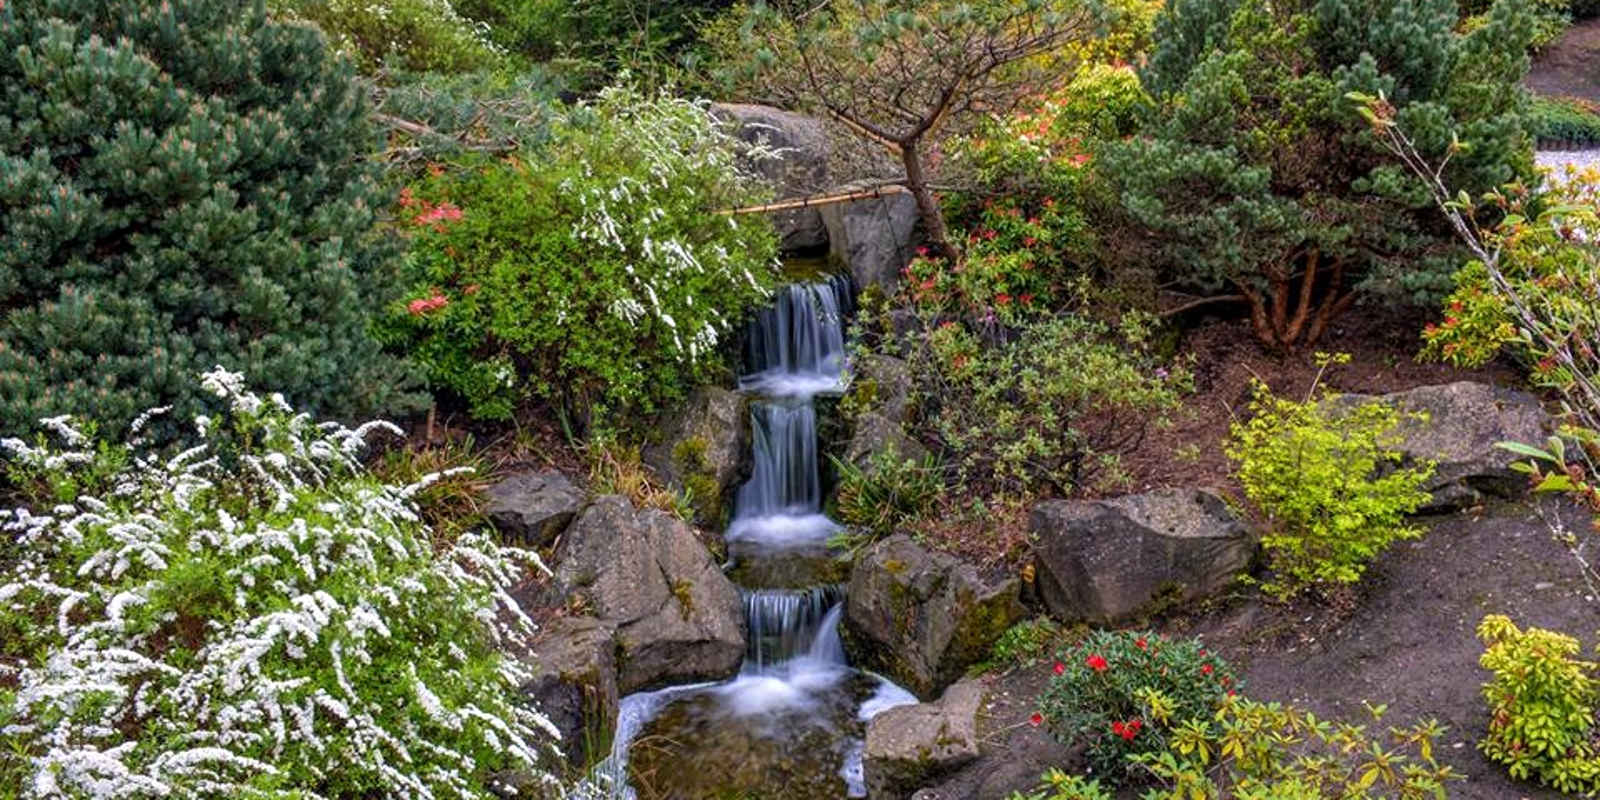 Waterfall surrounded by rocks and plants